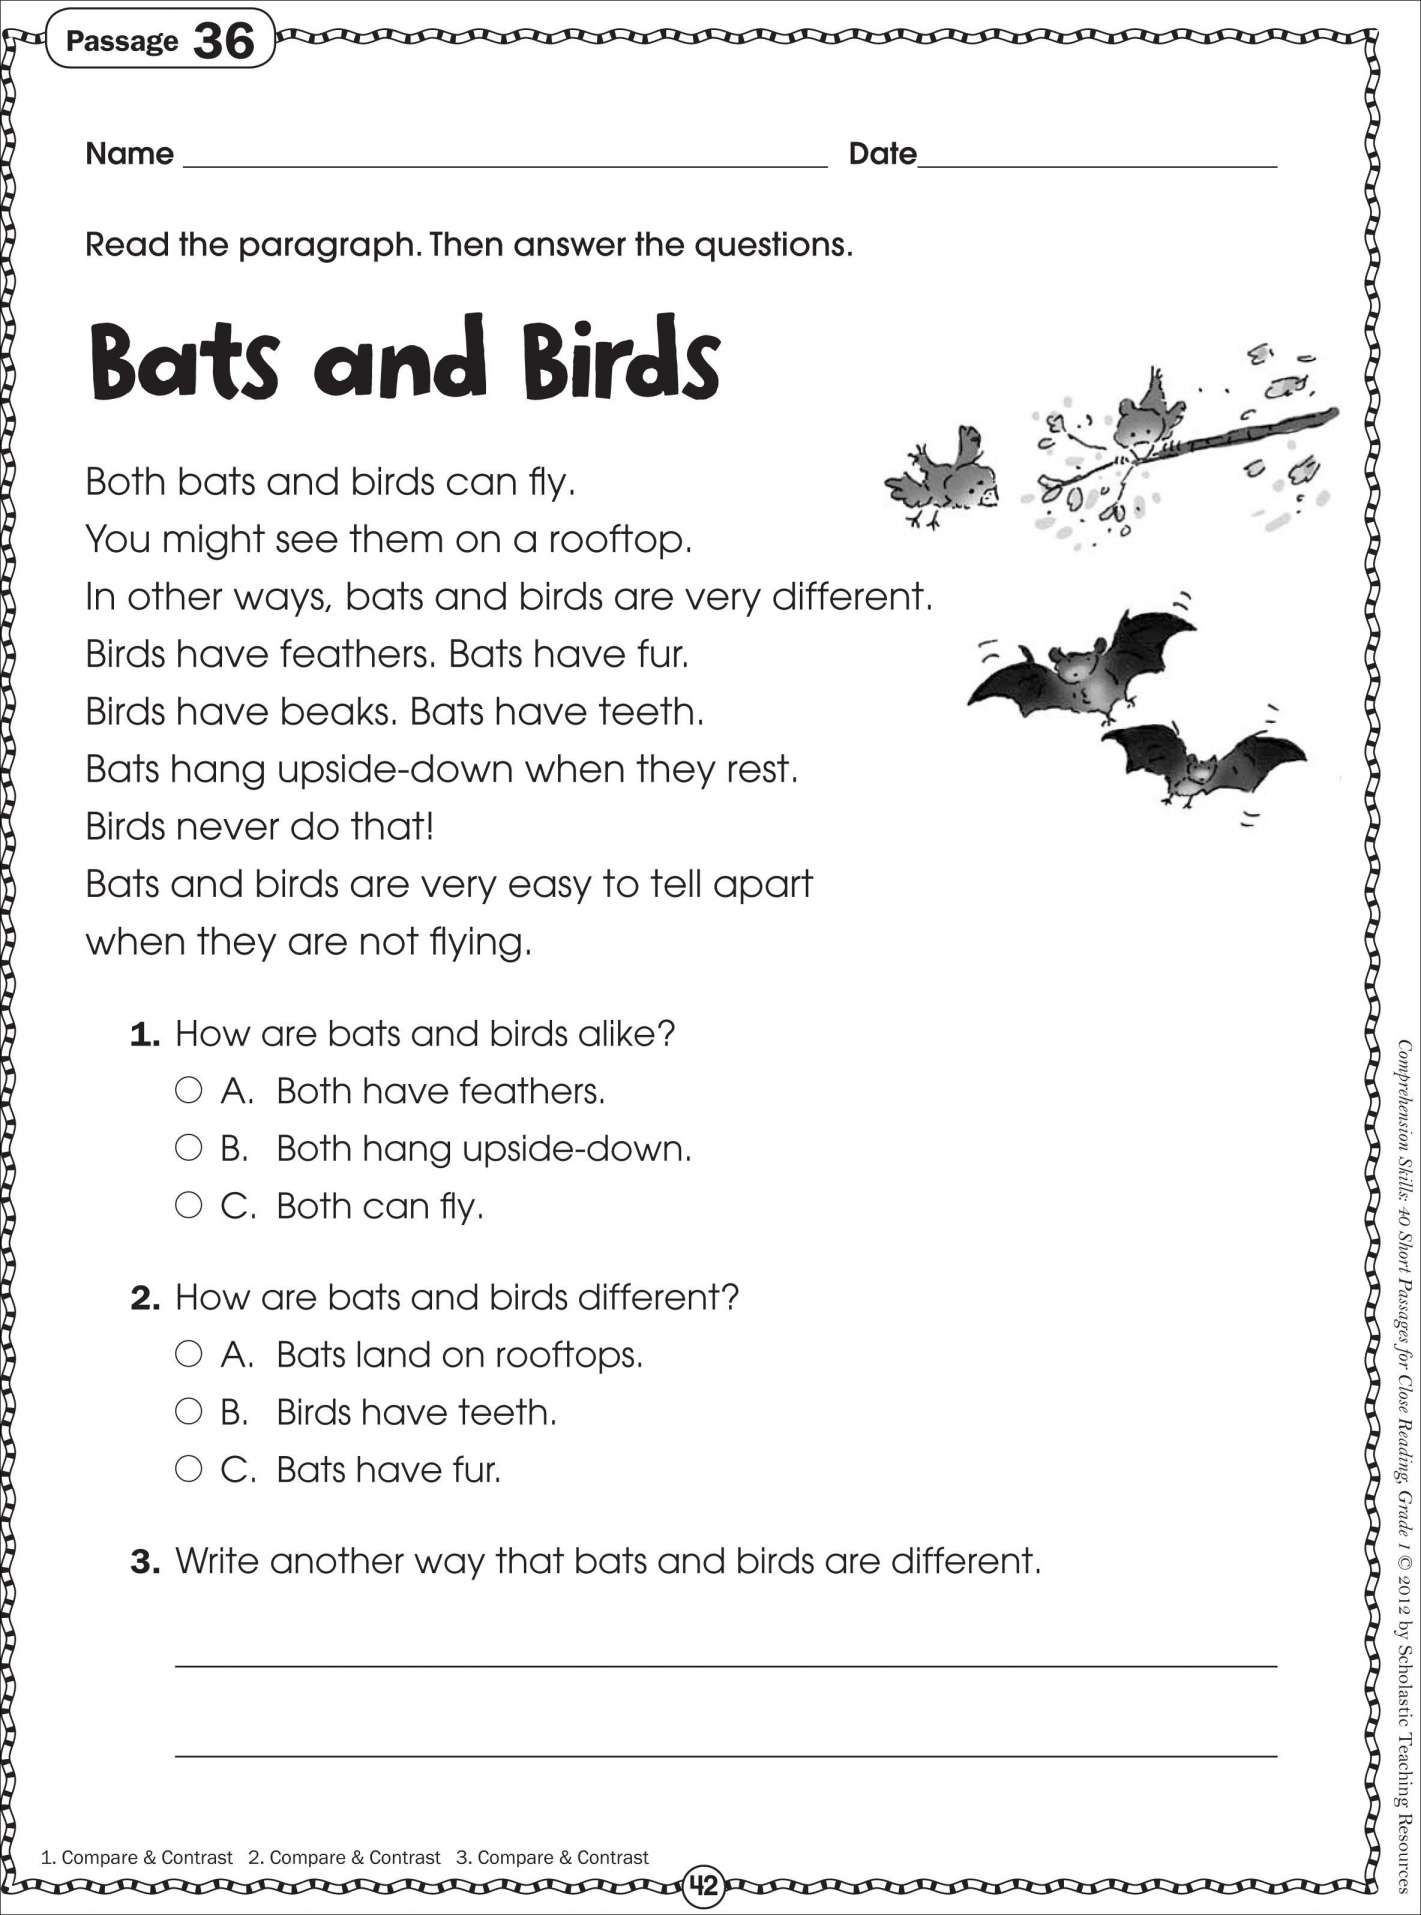 Reading Comprehension Worksheets For 2nd Grade Of 7